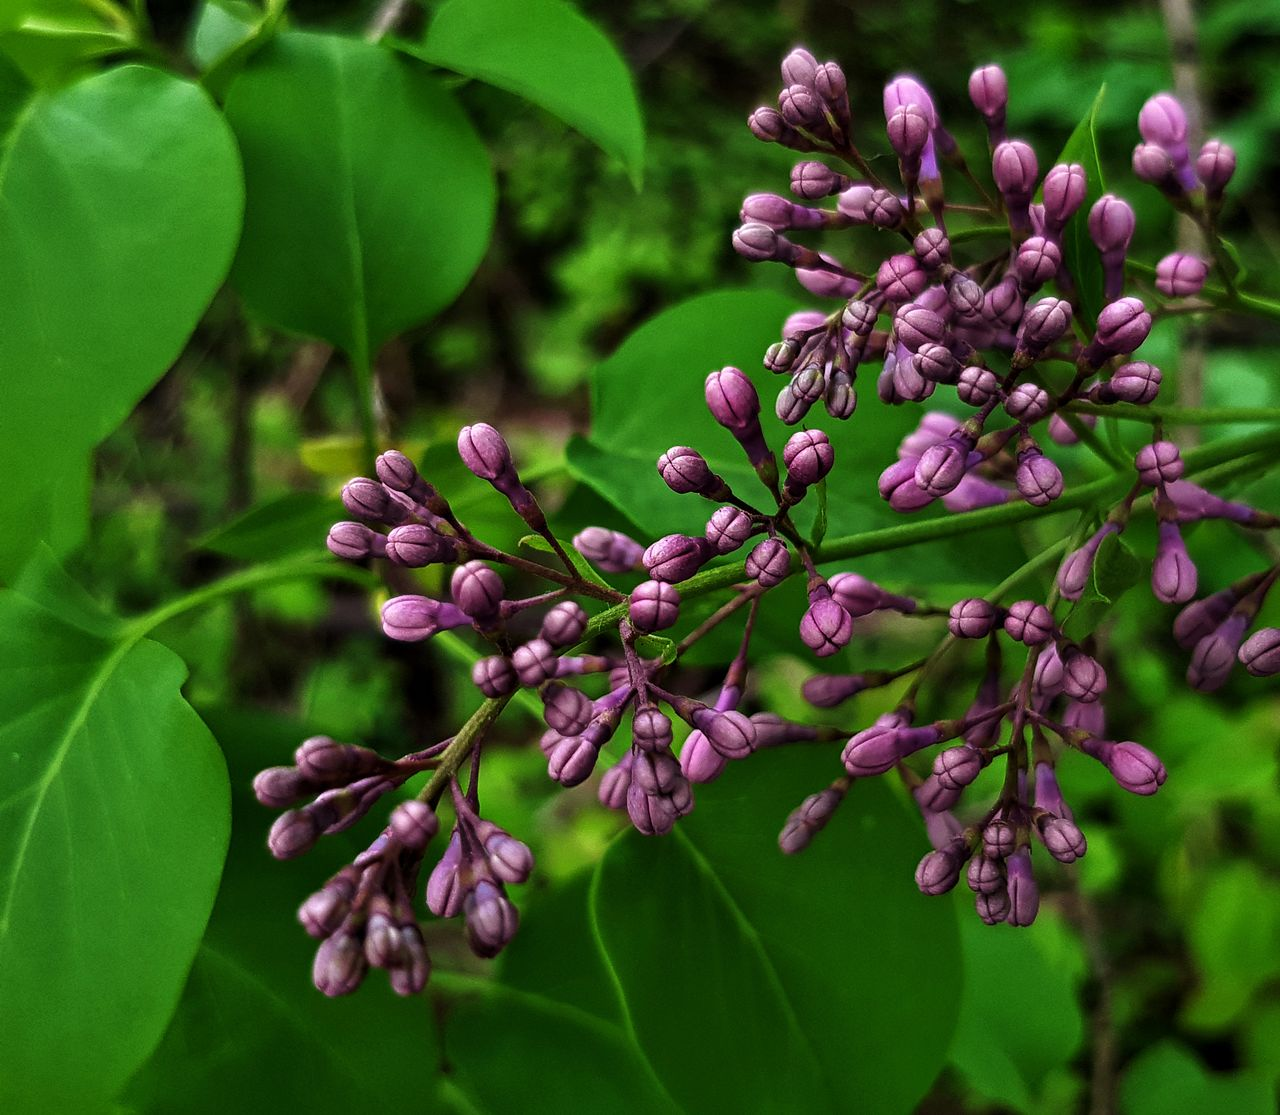 growth, plant, plant part, leaf, green color, freshness, beauty in nature, close-up, nature, flower, day, focus on foreground, flowering plant, no people, purple, fragility, food and drink, vulnerability, tree, food, outdoors, lilac